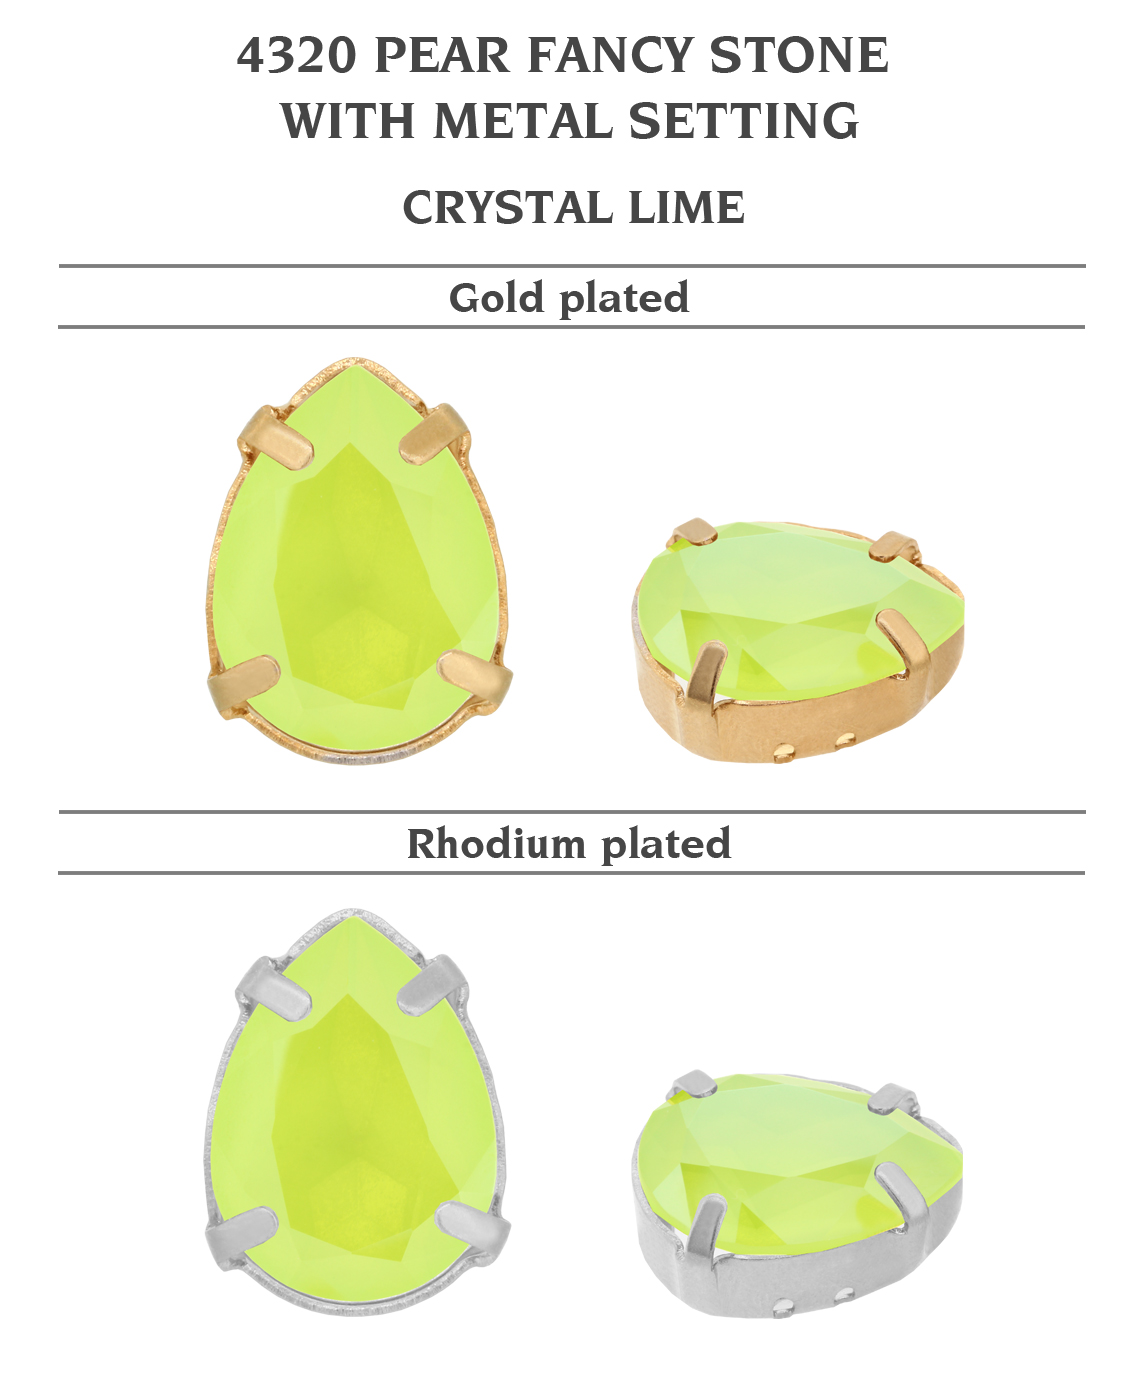 Genuine-SWAROVSKI-4320-Pear-Fancy-Stones-with-Sew-On-Metal-Setting-Many-Colors miniatuur 13